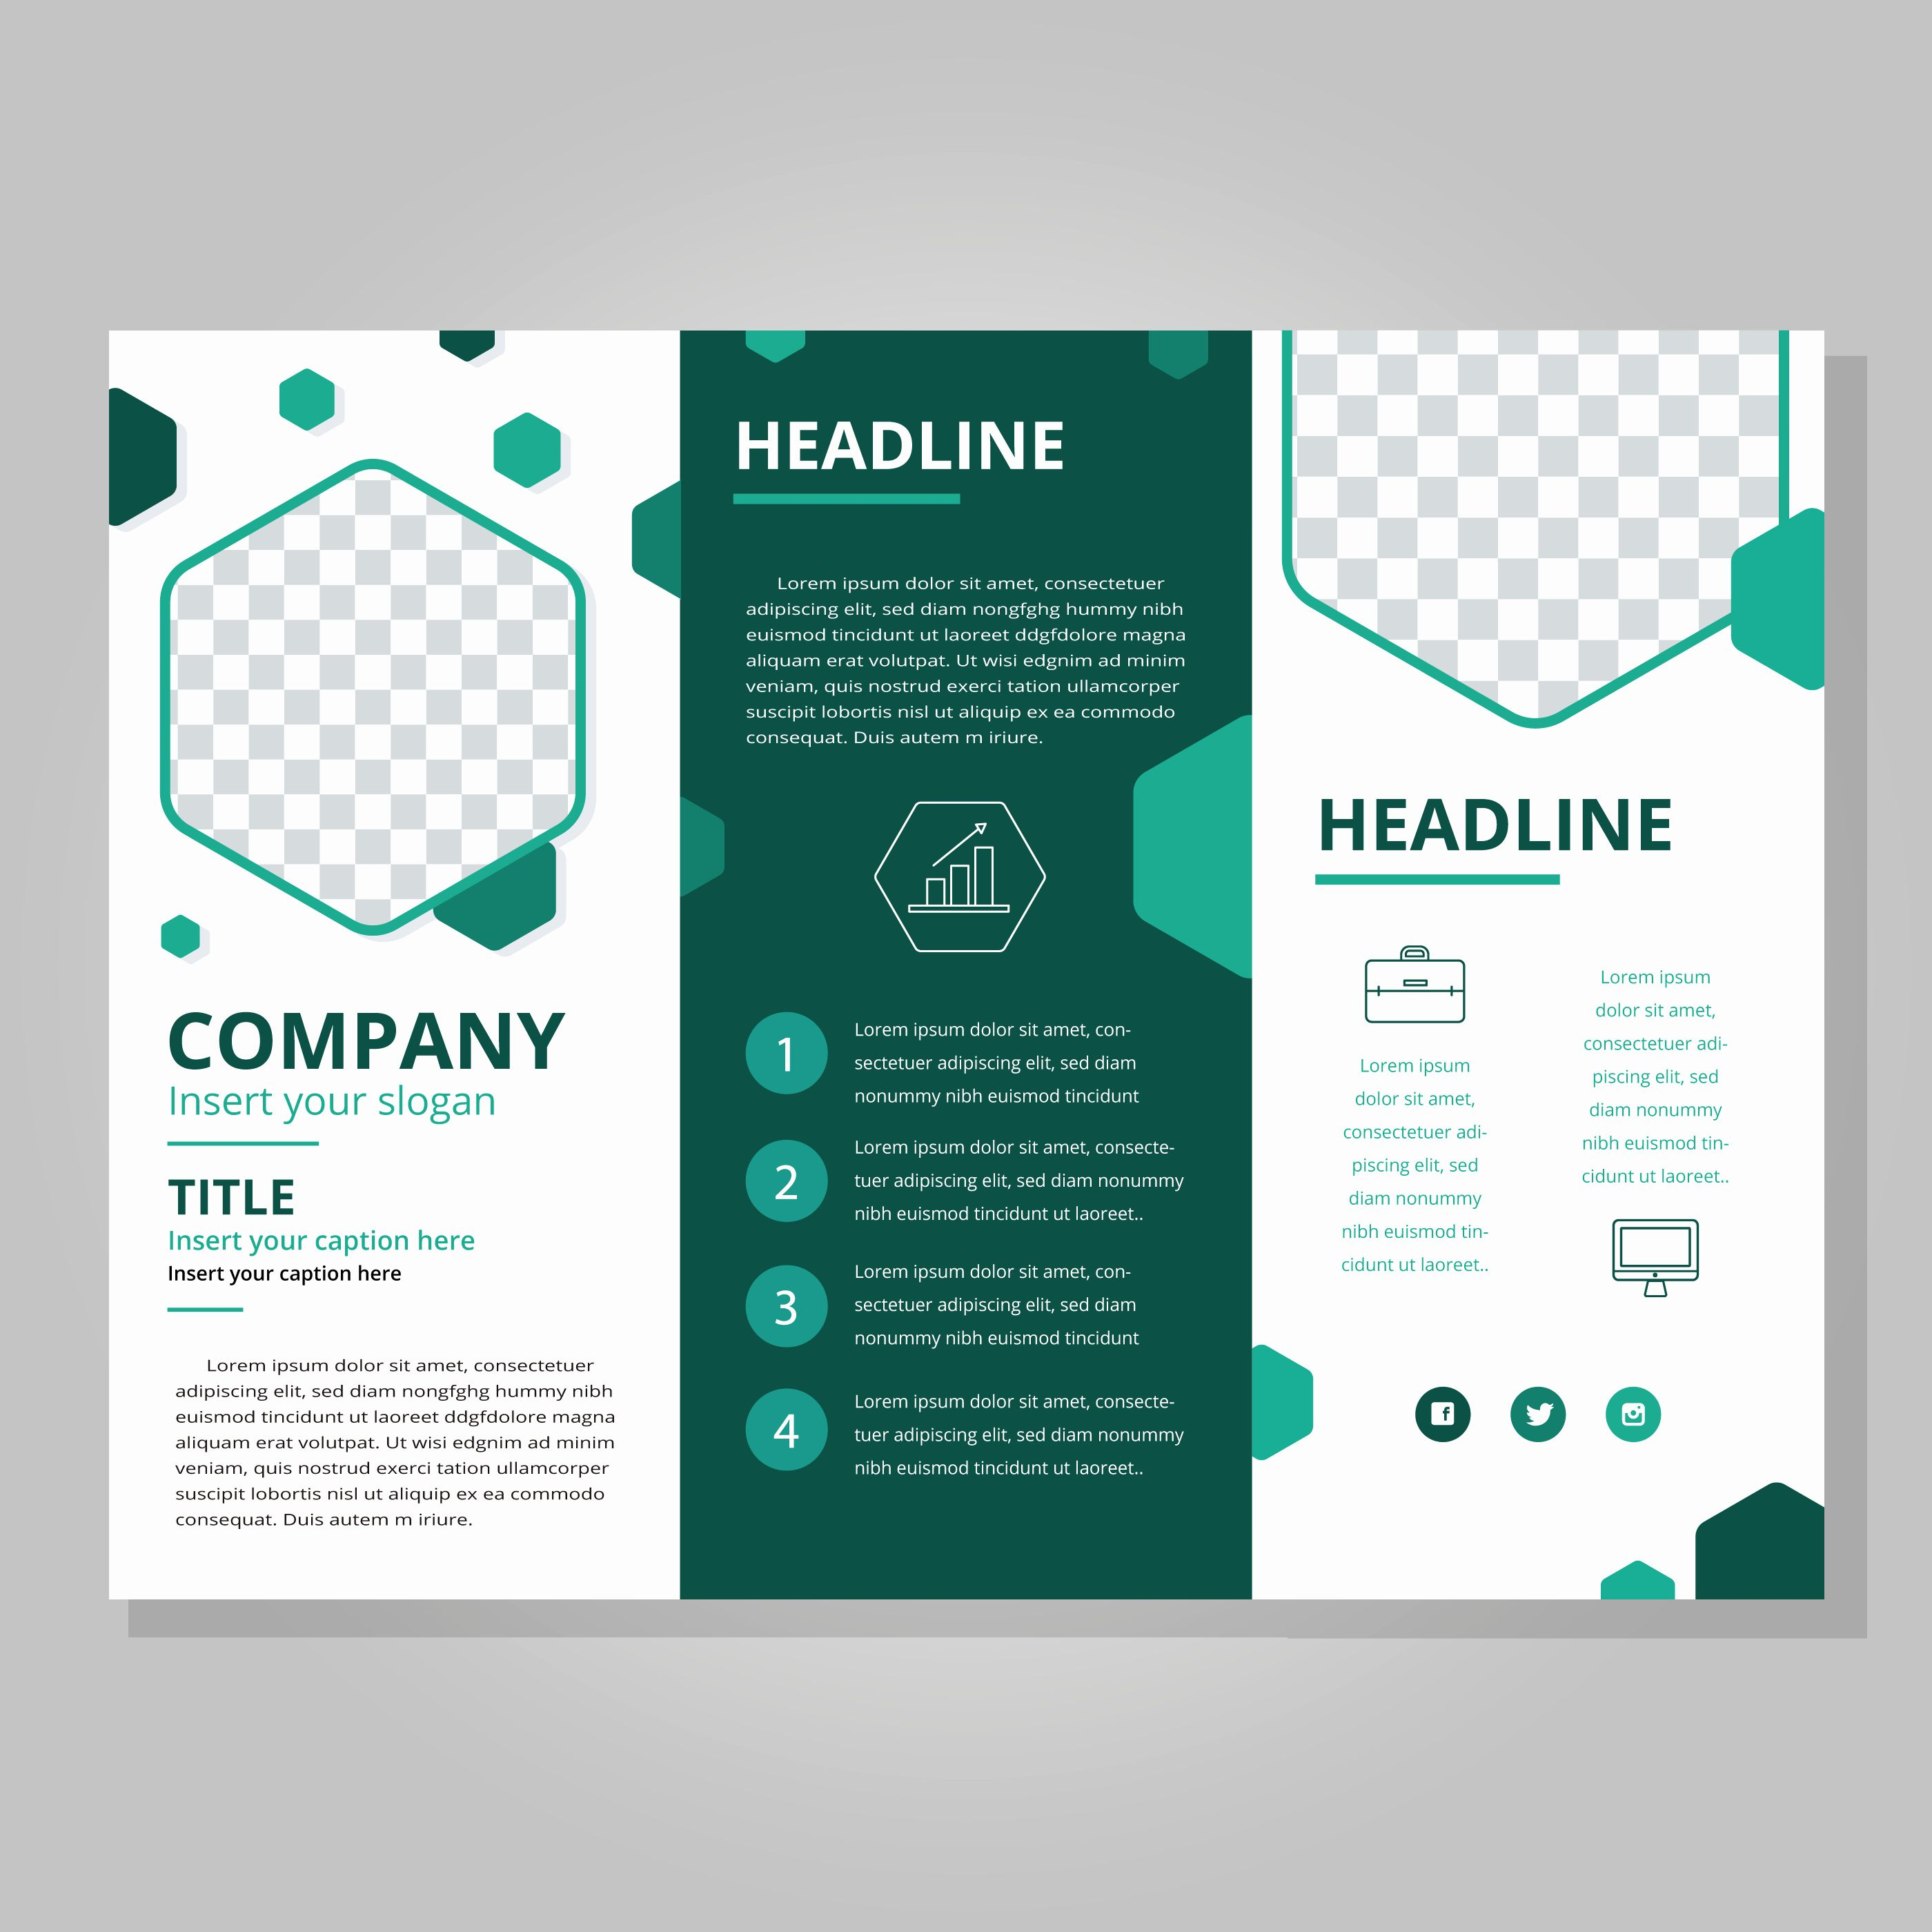 Tri Fold Brochure Template Powerpoint Awesome Modern Tri Fold Brochure Template Downl In 2020 Brochure Design Template Free Brochure Template Trifold Brochure Template